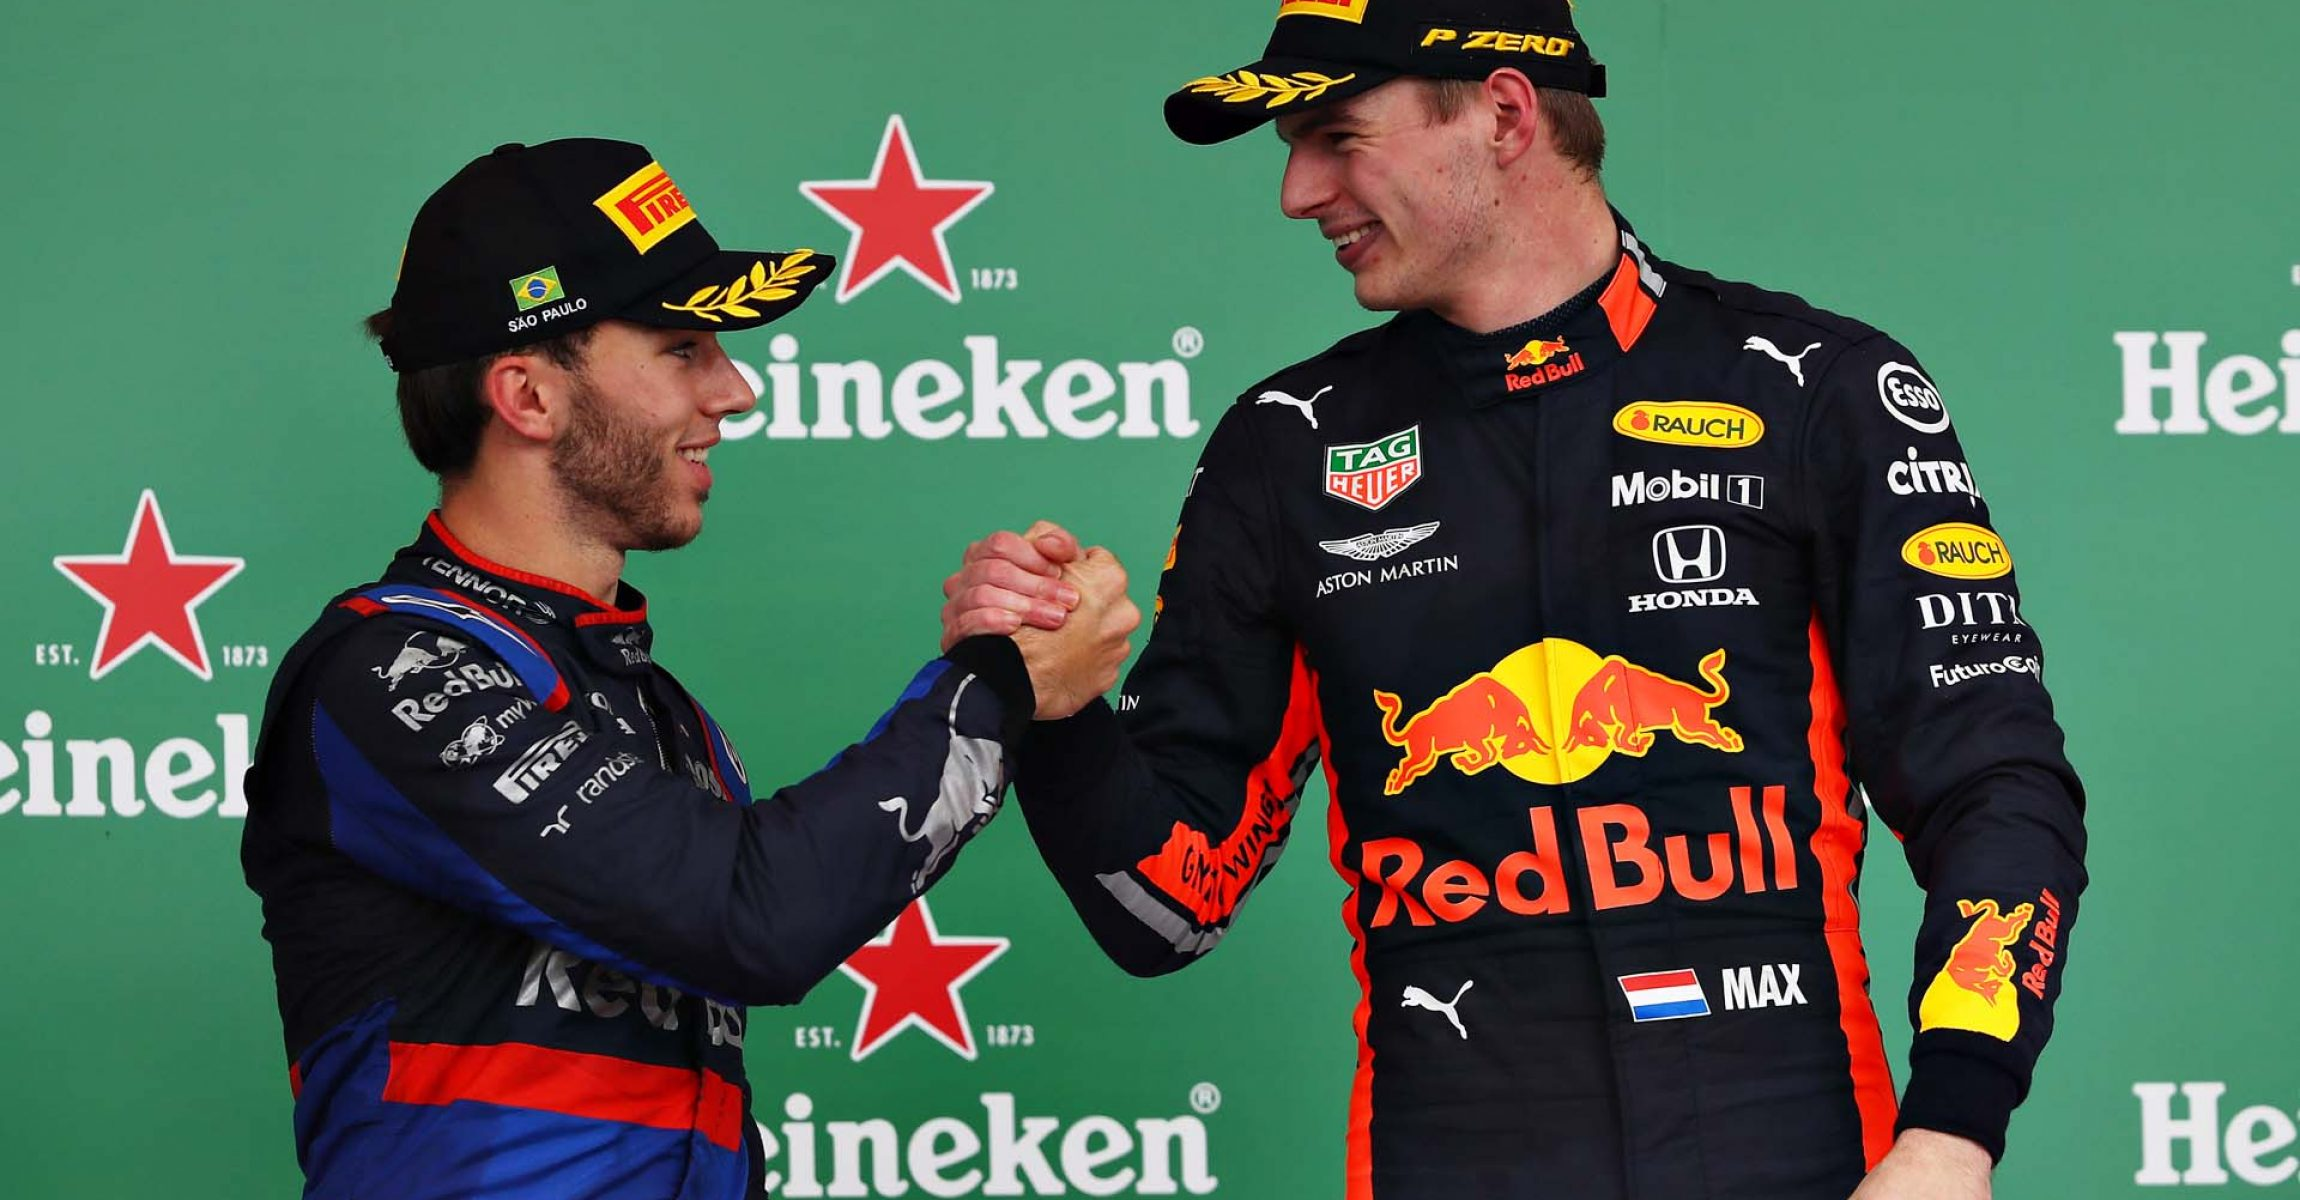 SAO PAULO, BRAZIL - NOVEMBER 17: Race winner Max Verstappen of Netherlands and Red Bull Racing and second placed Pierre Gasly of France and Scuderia Toro Rosso celebrate on the podium during the F1 Grand Prix of Brazil at Autodromo Jose Carlos Pace on November 17, 2019 in Sao Paulo, Brazil. (Photo by Mark Thompson/Getty Images) // Getty Images / Red Bull Content Pool // AP-227E6KM1S2111 // Usage for editorial use only //